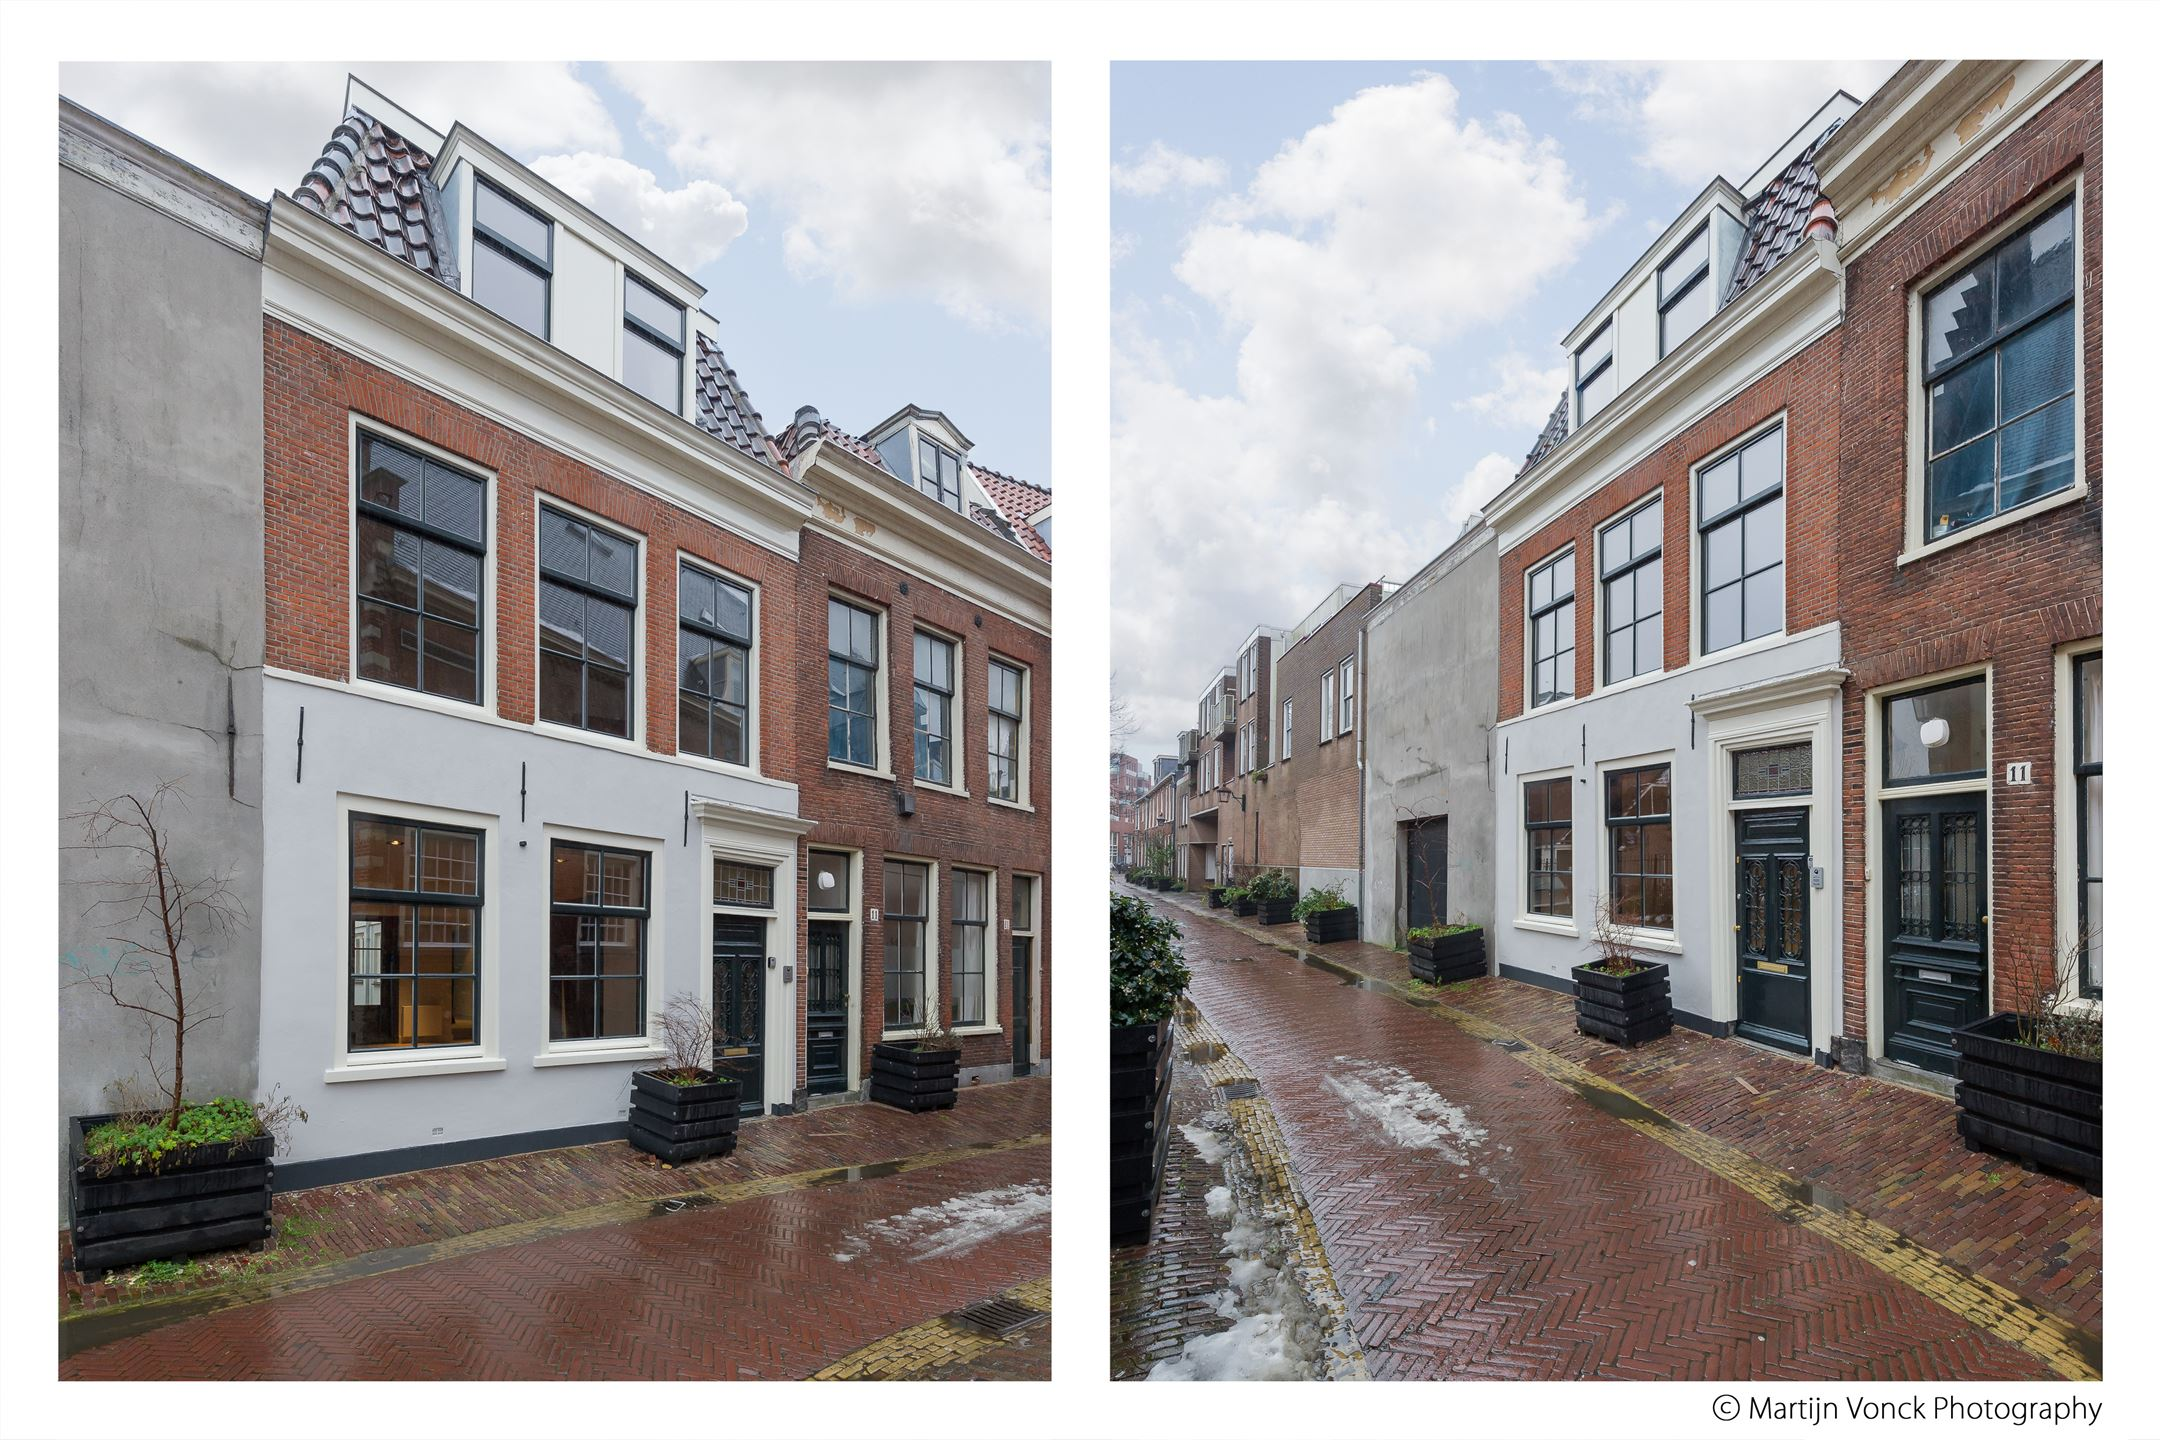 House for sale gasthuisstraat 9 2011 xn haarlem funda for Funda haarlem centrum